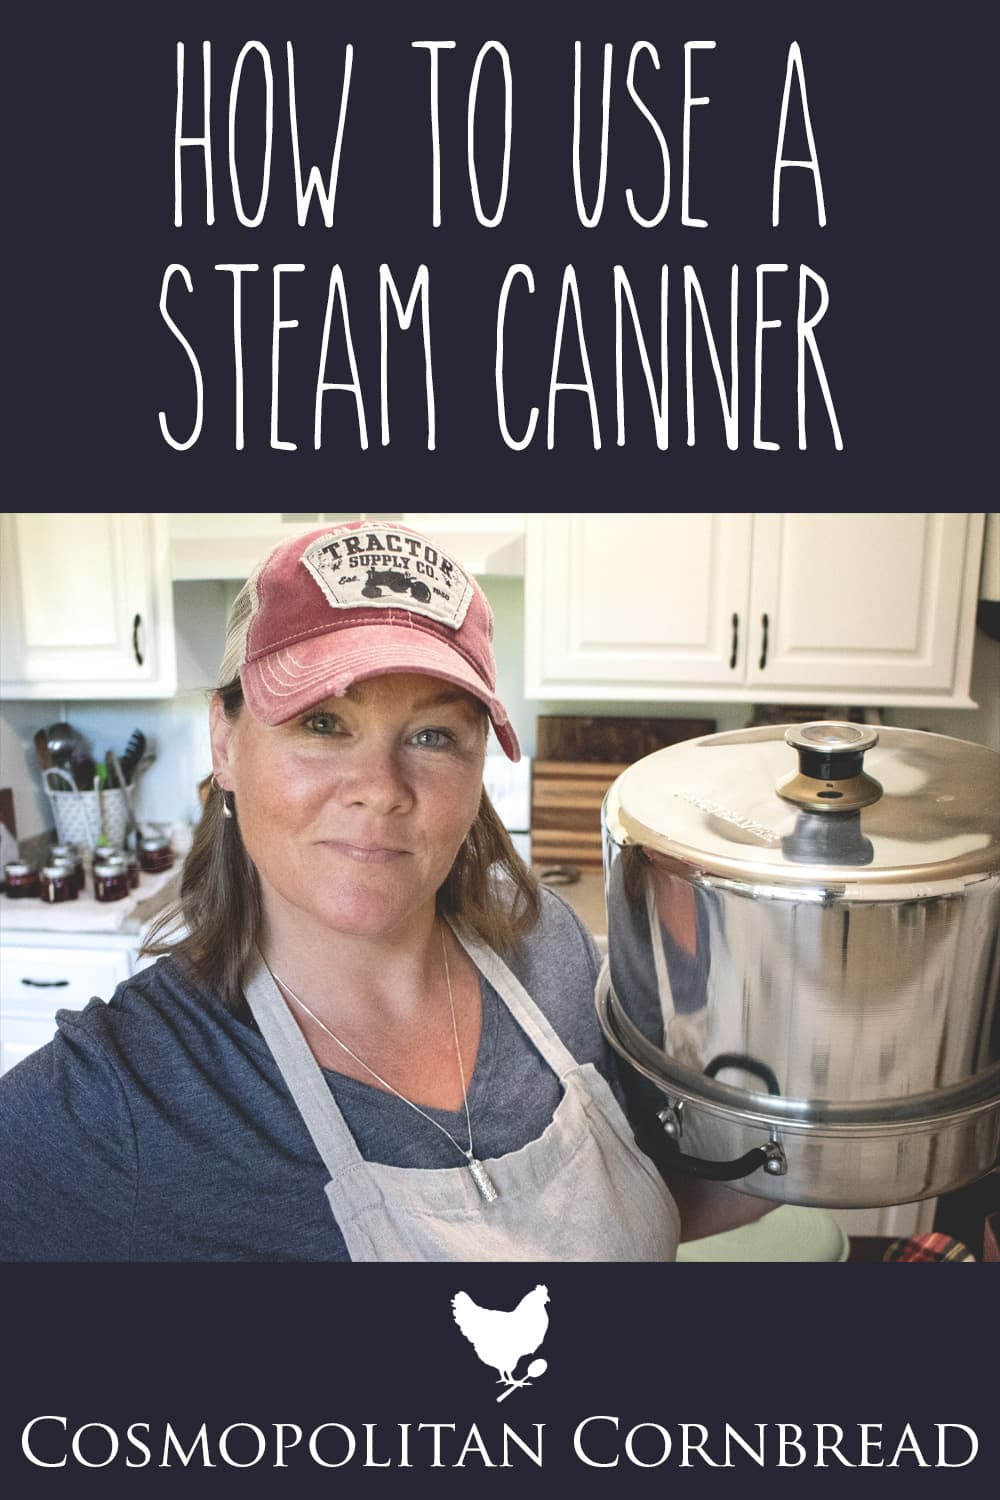 Come into the kitchen with me as I share about using a steam canner and make some of my Strawberry Jalapeno Jam!